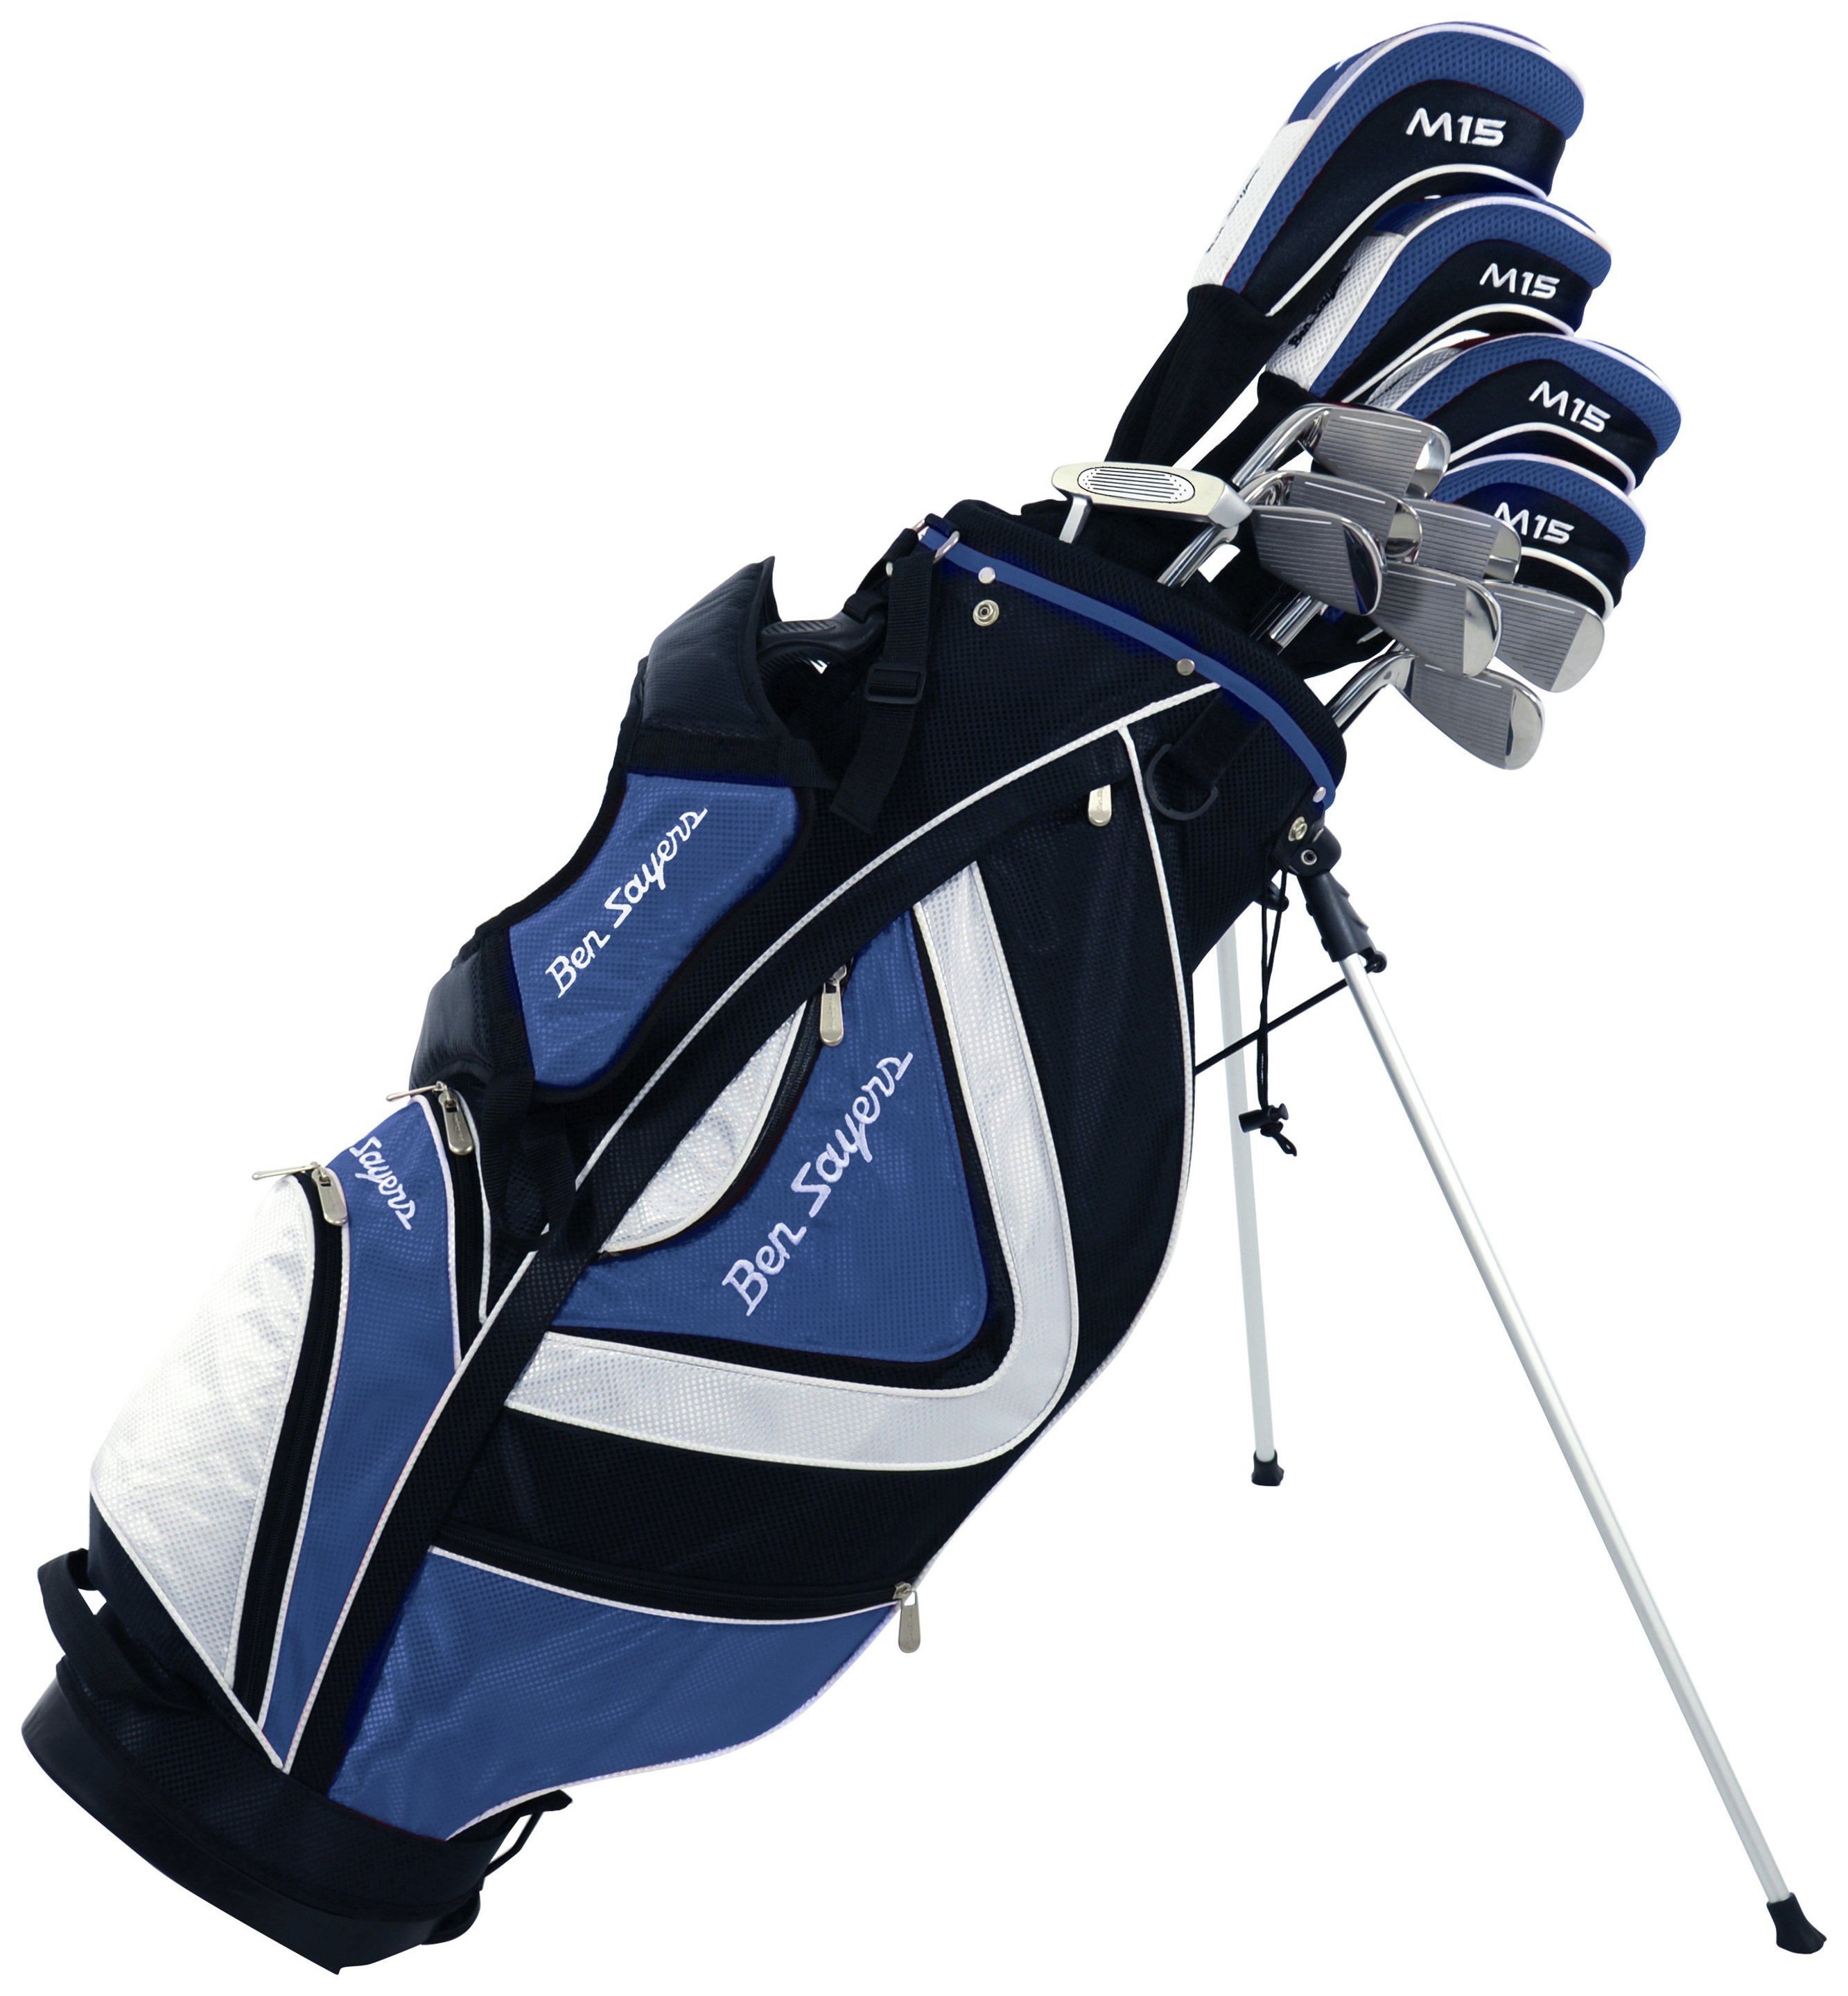 Ben Sayers Golf M15 Men's Package Set - Blue 1